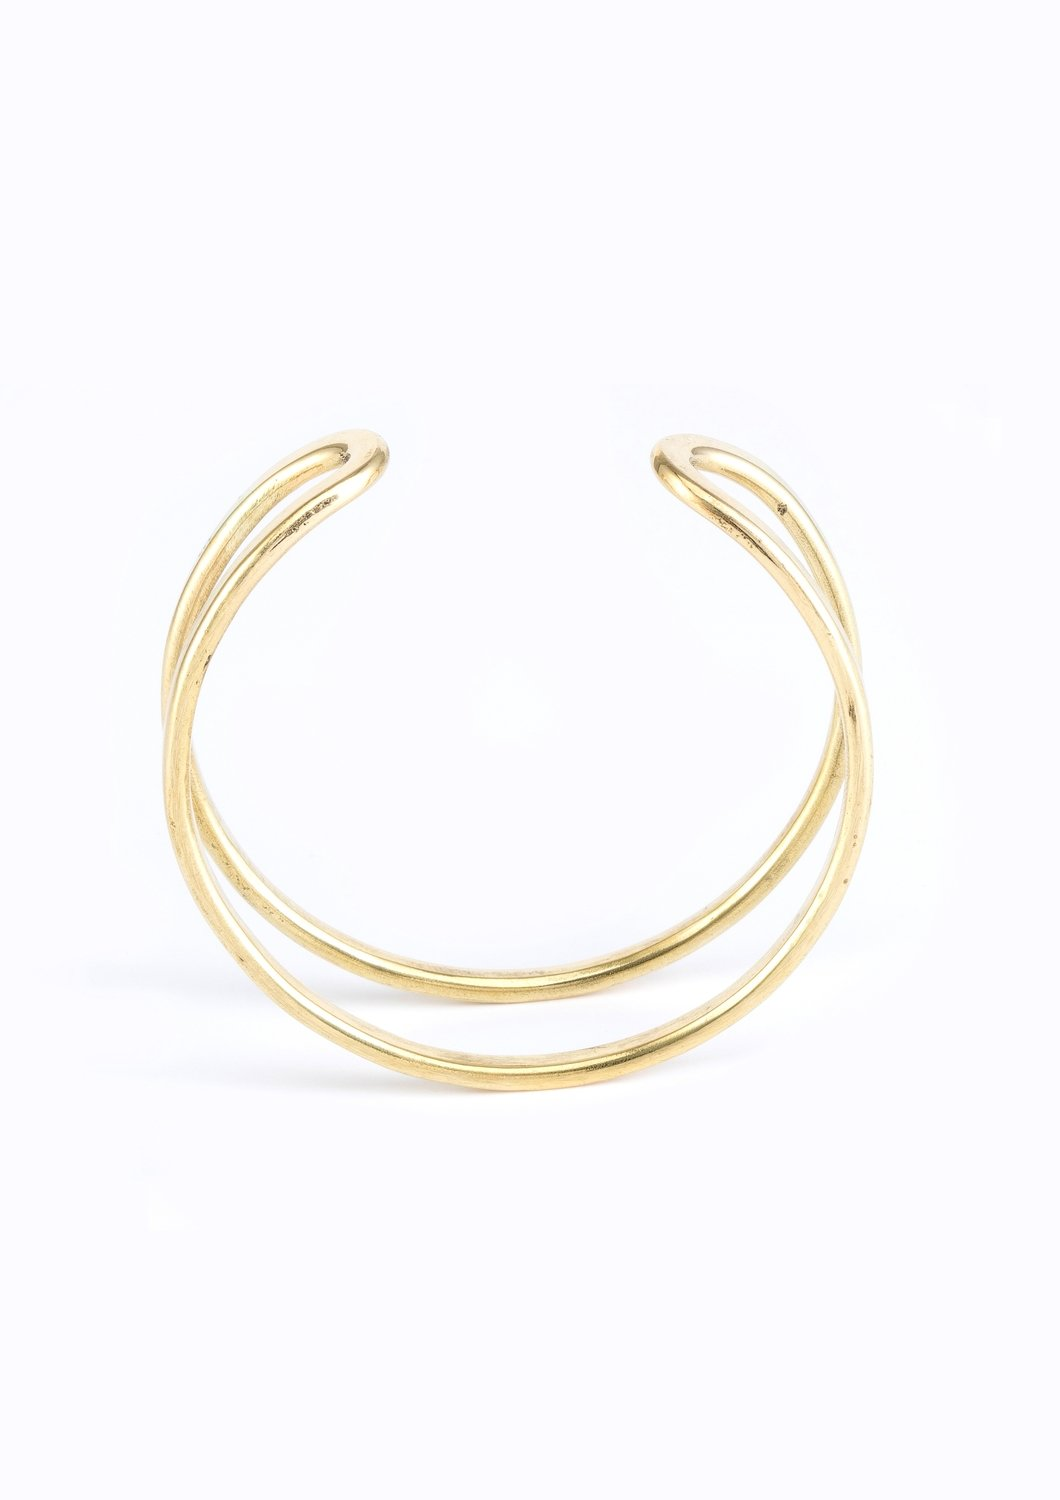 Tuareg Bangle